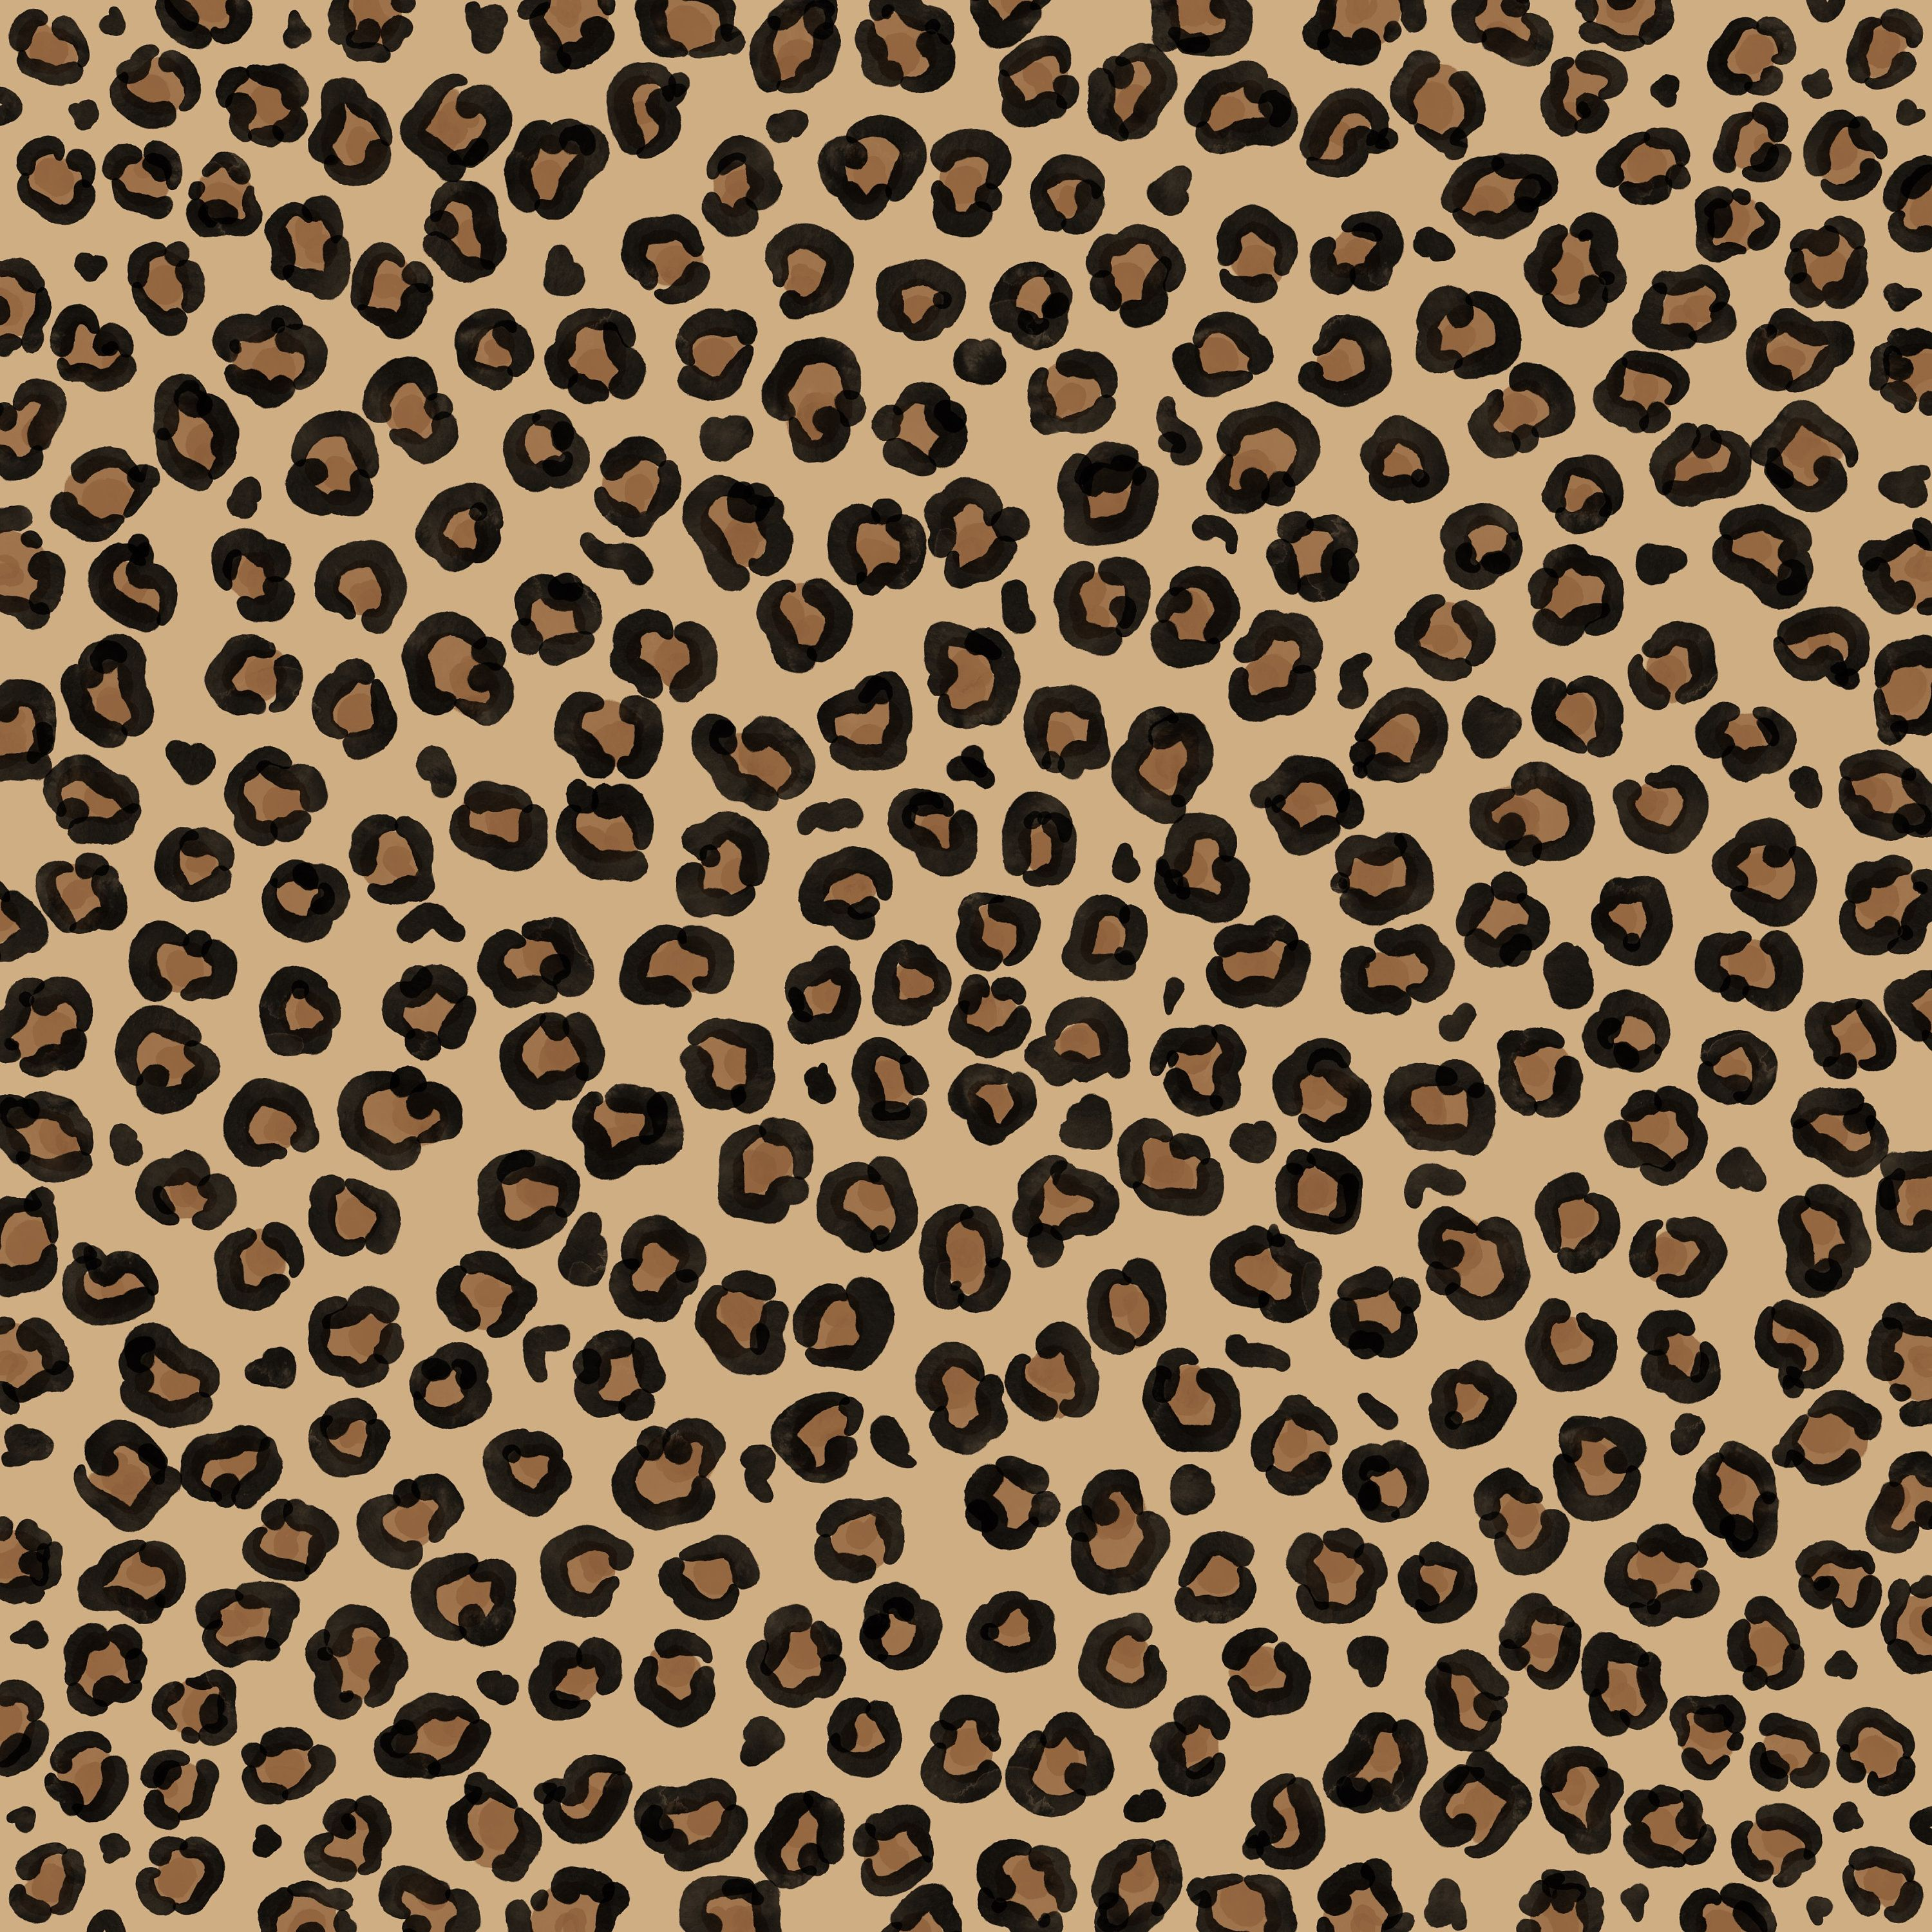 Leopard Print Digital Paper Just What You Need To Make Your Own Leopard Print Designs Plus Our Backgrou Leopard Print Background Print Twitter Digital Paper